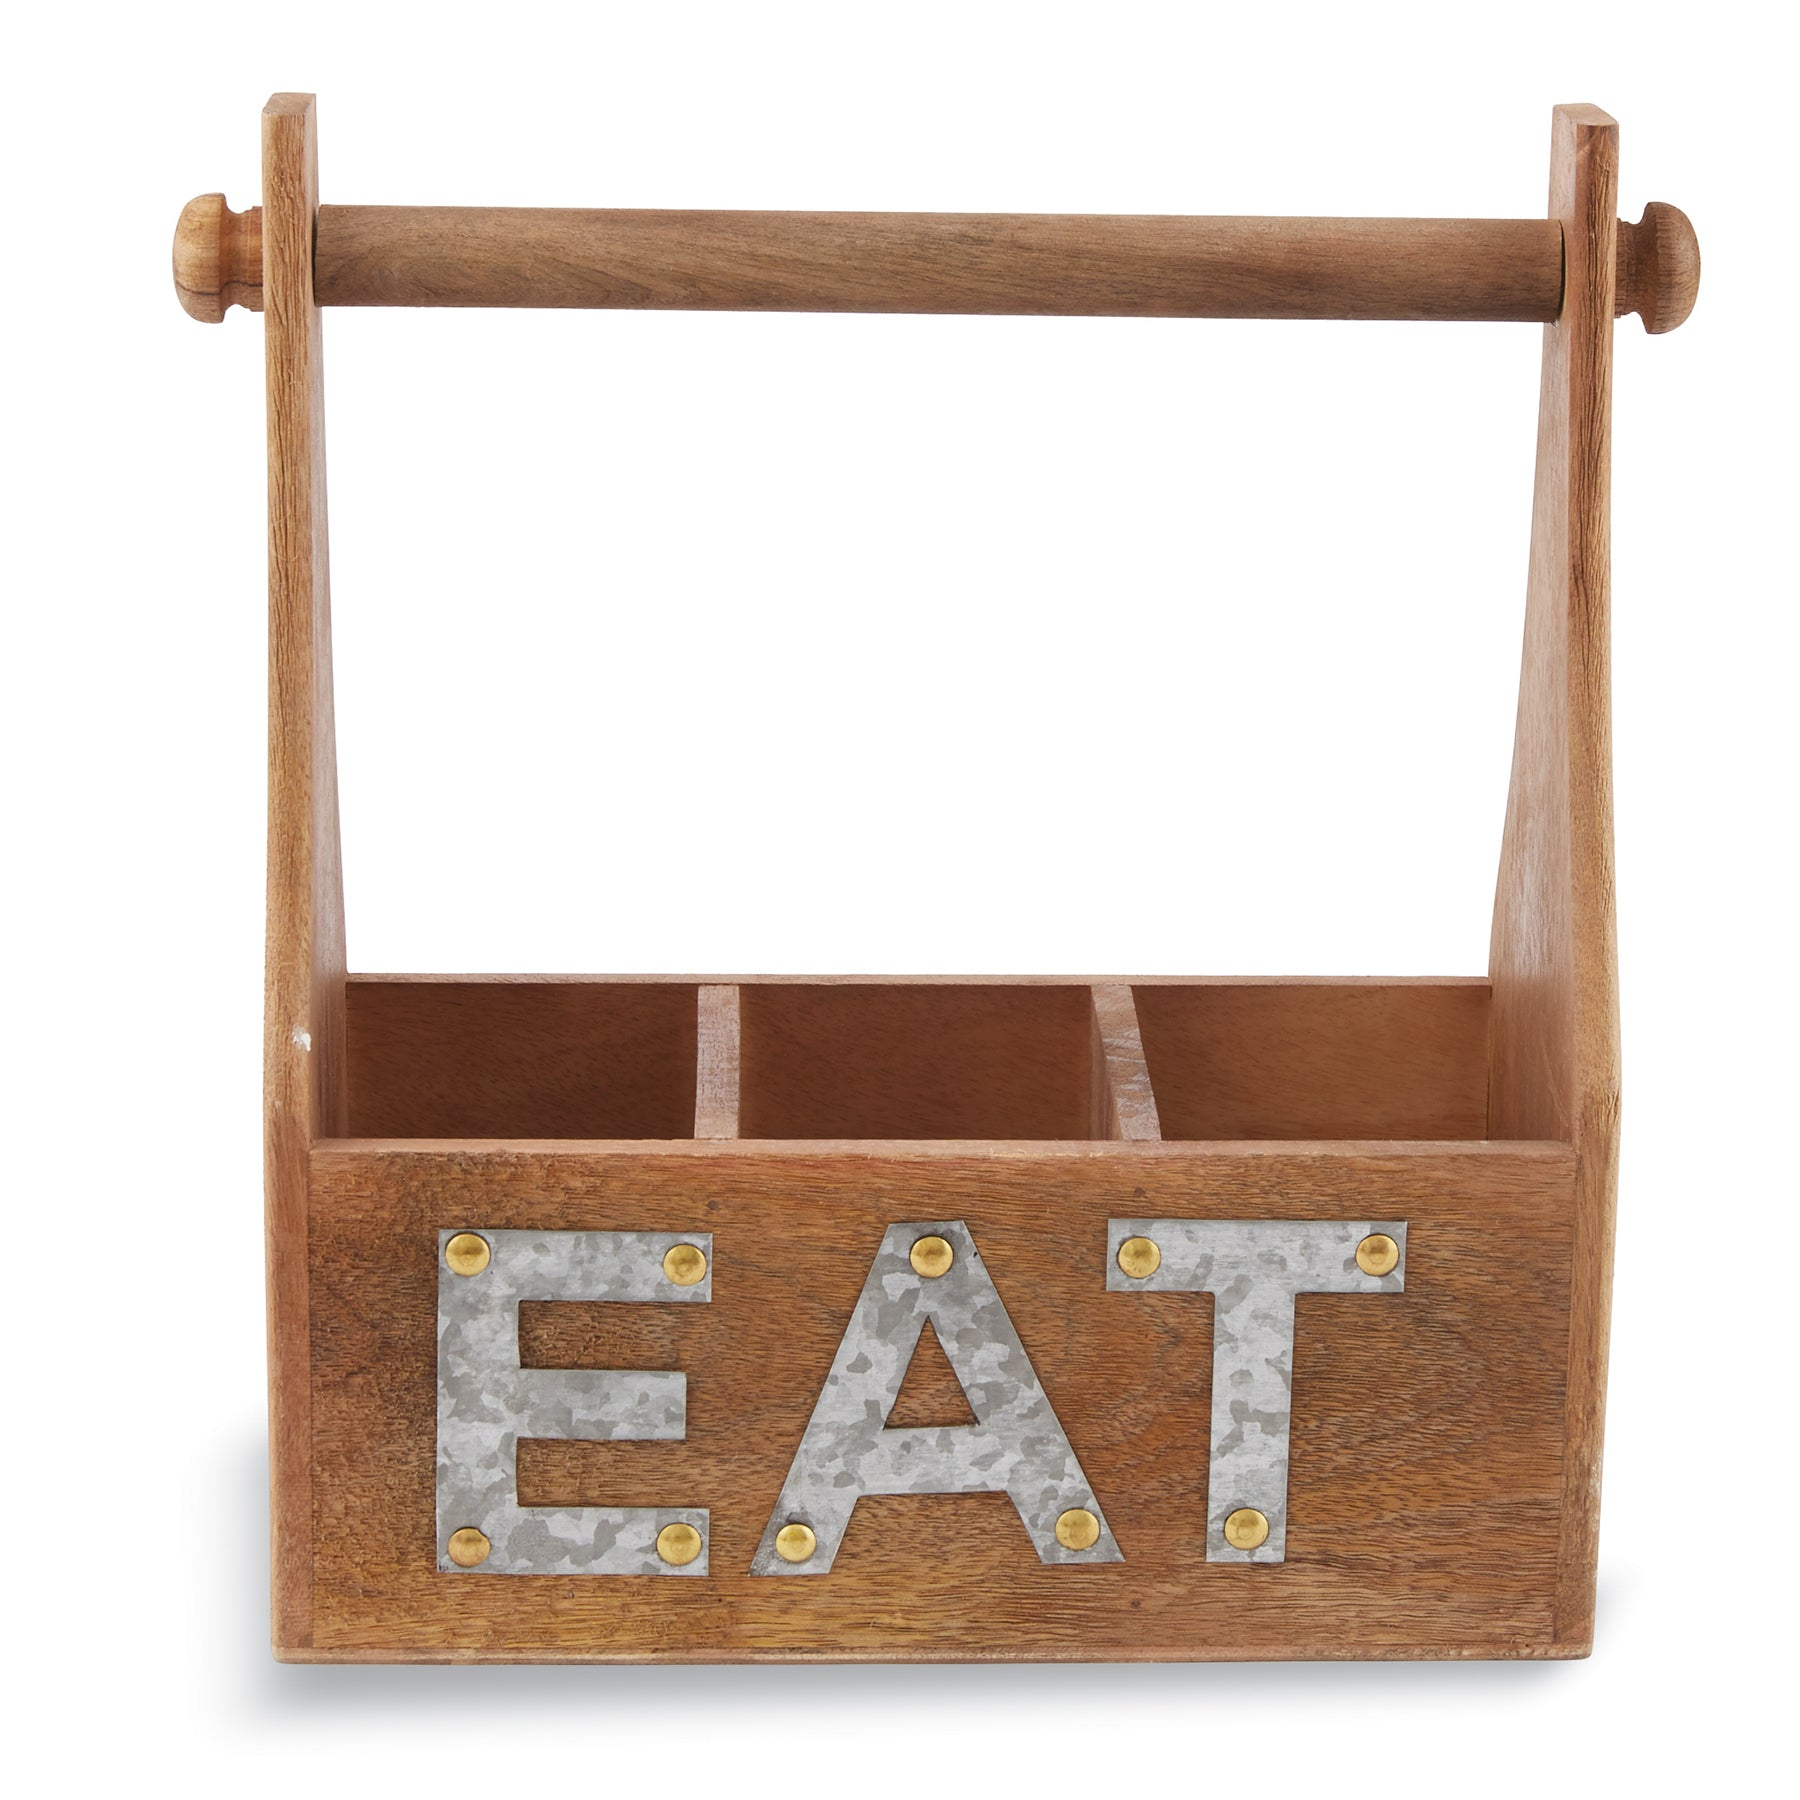 Mud-Pie Eat Towel & Utensil Caddy